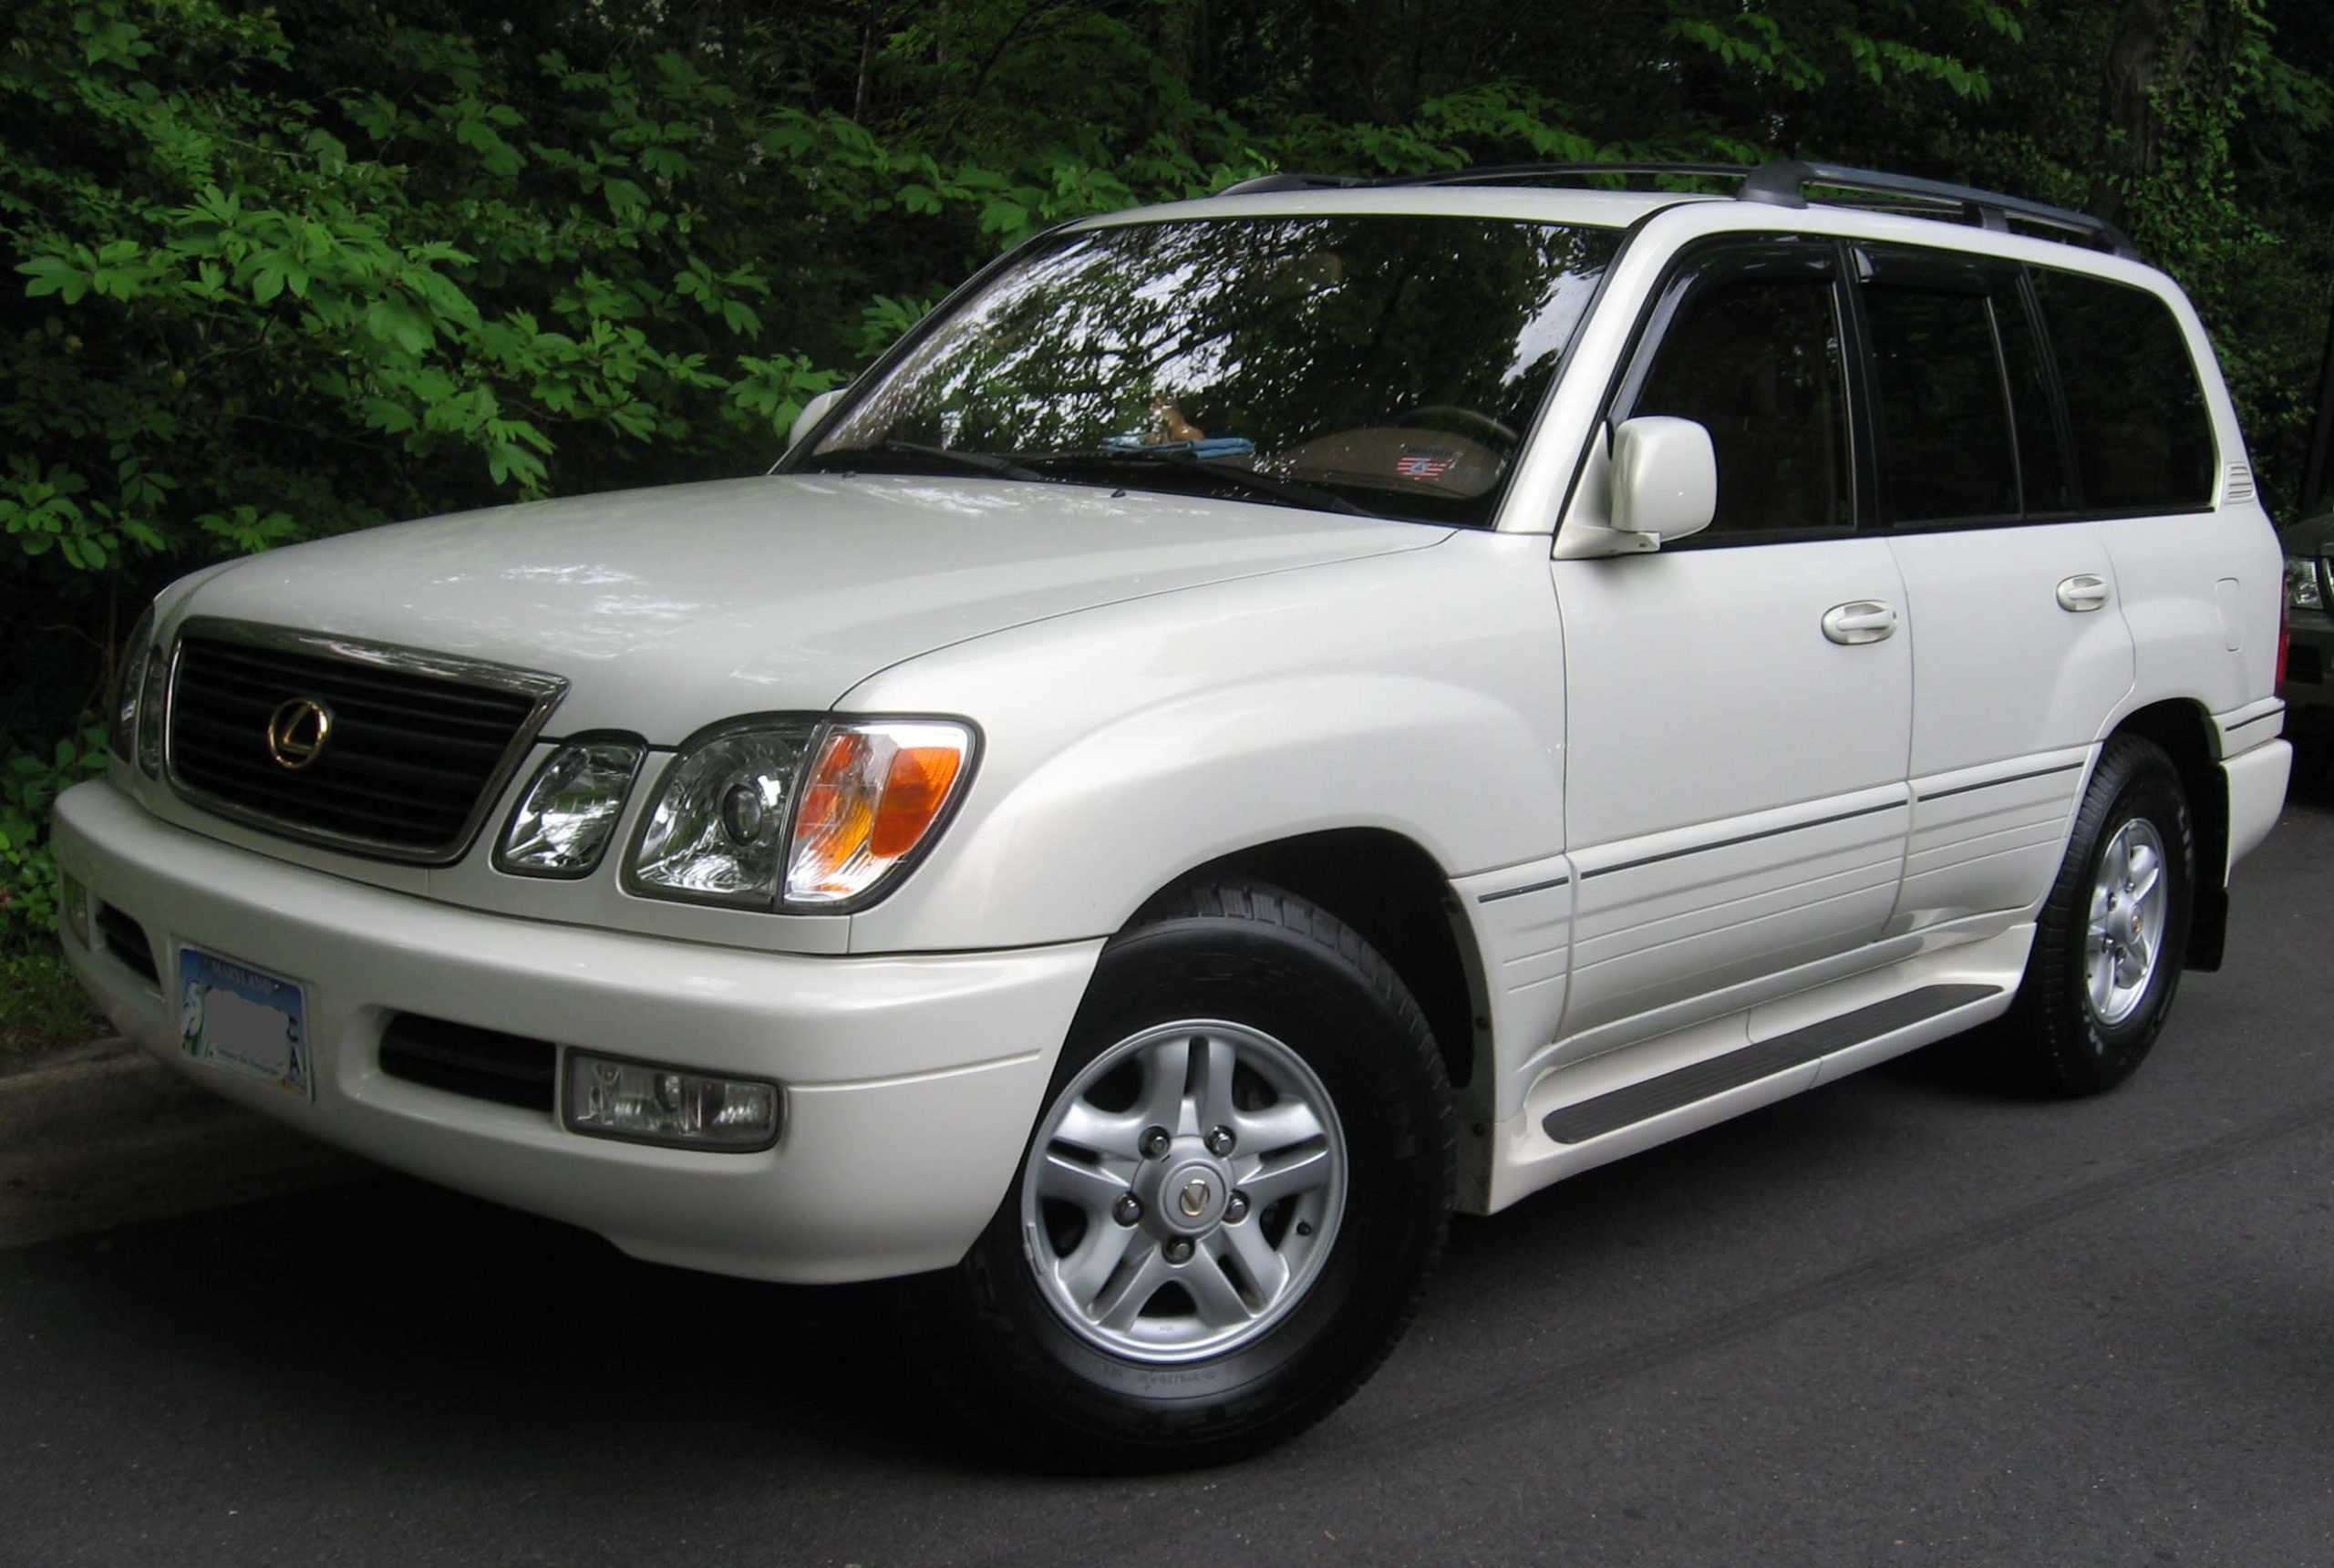 2002 Lexus LX 470 Owners Manual